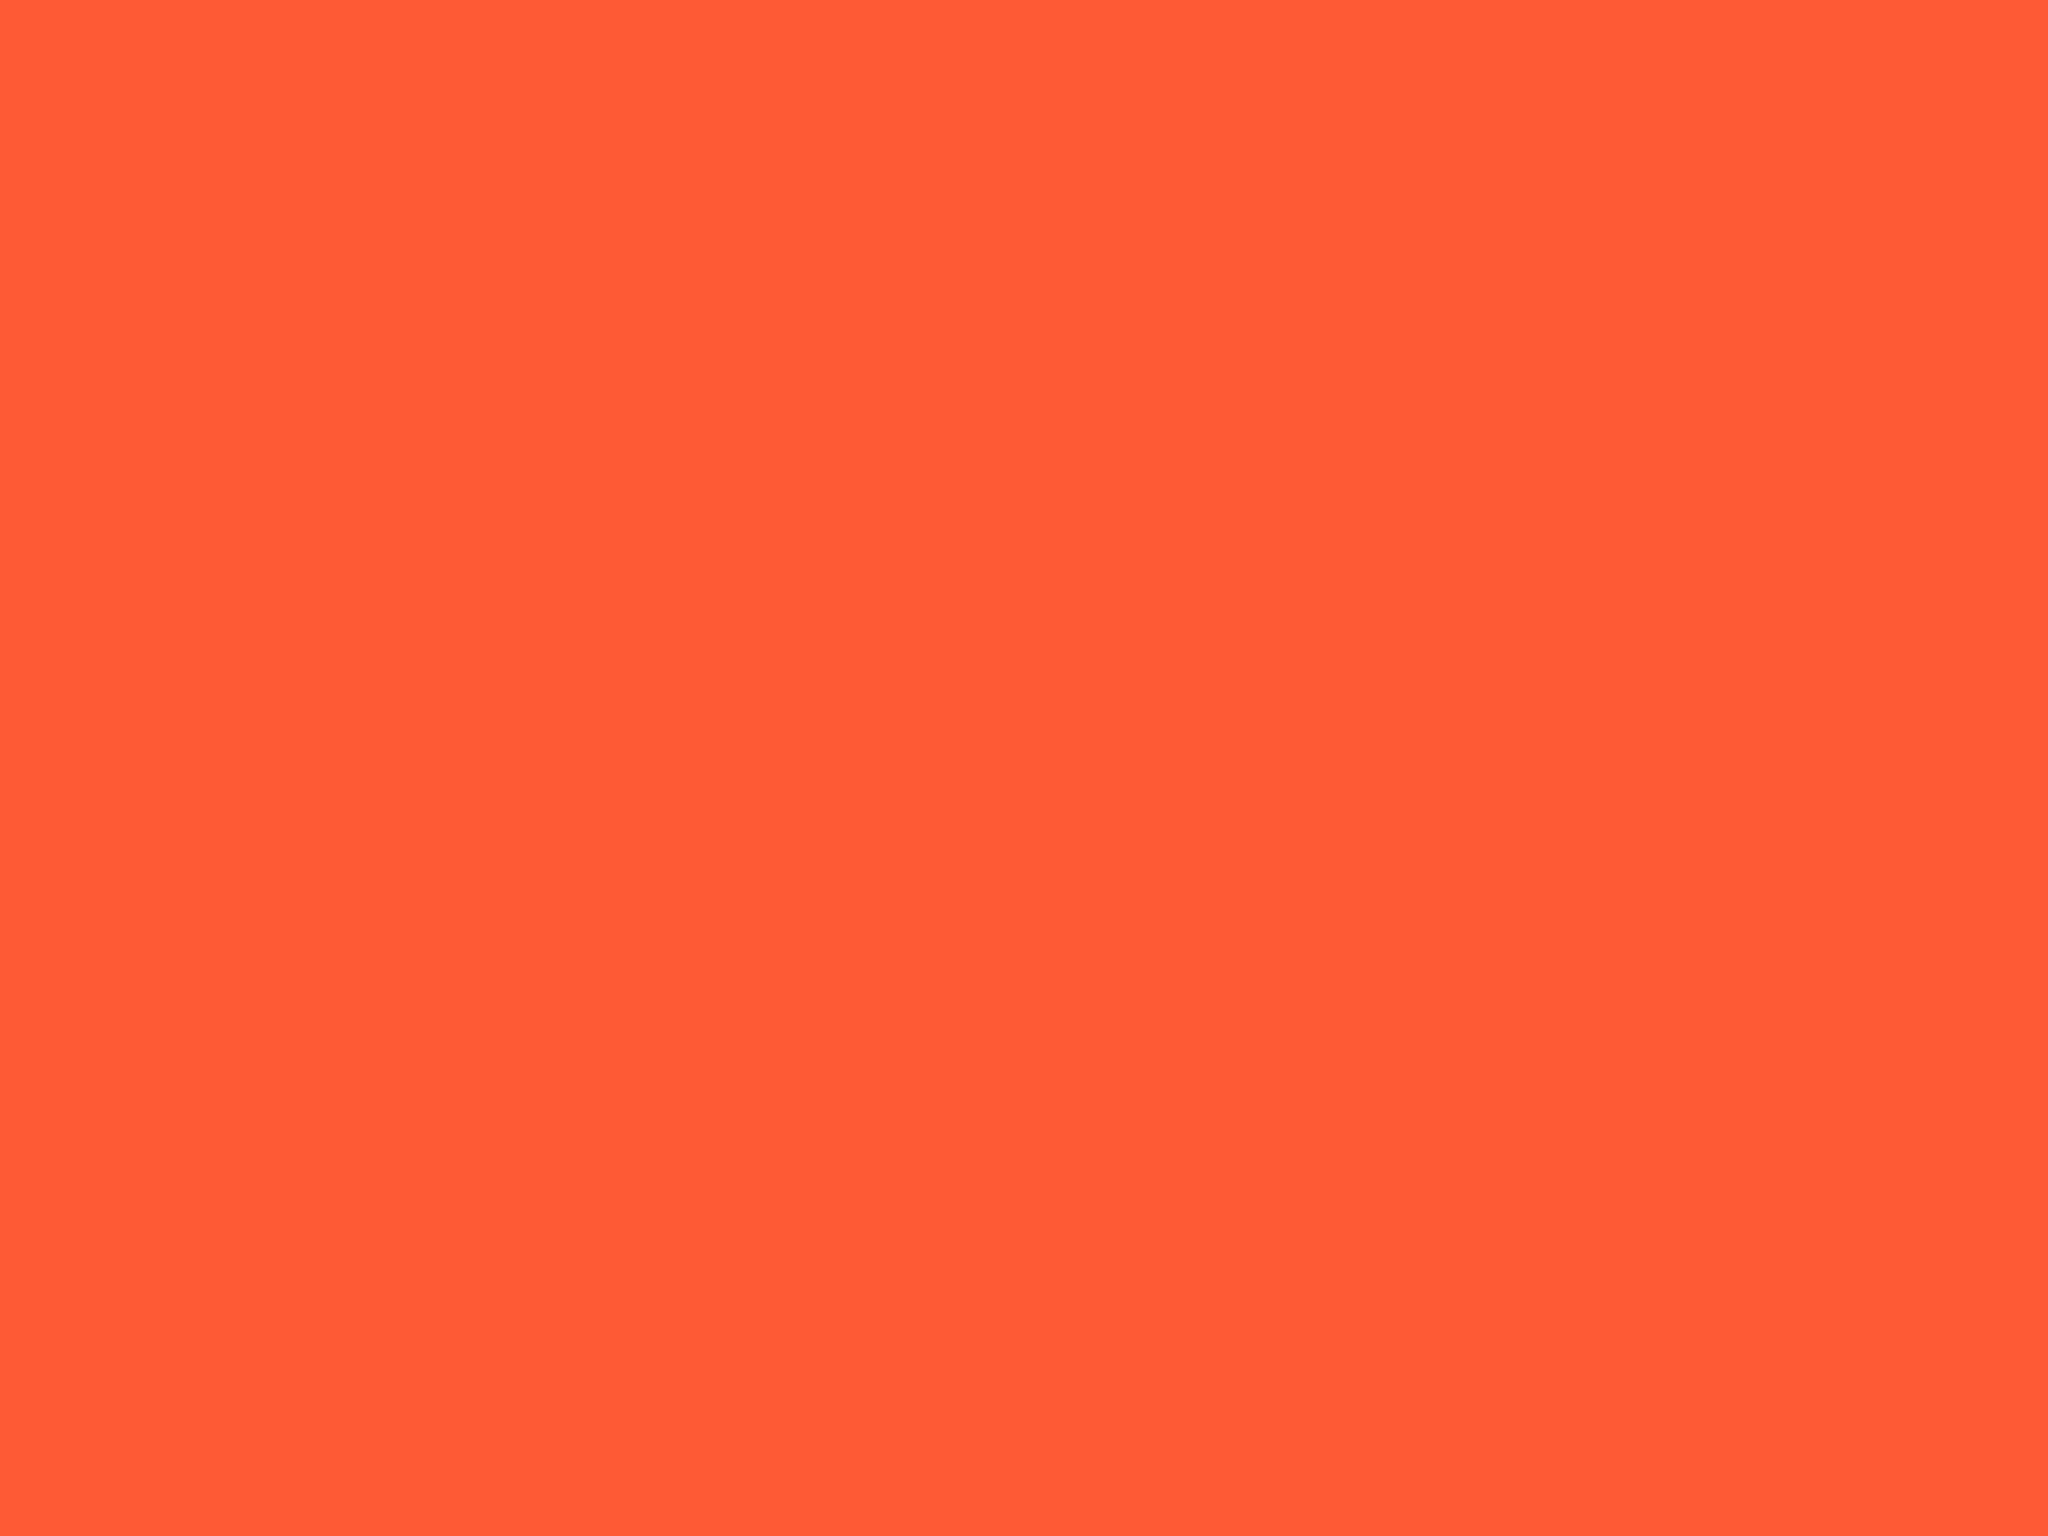 2048x1536 Portland Orange Solid Color Background